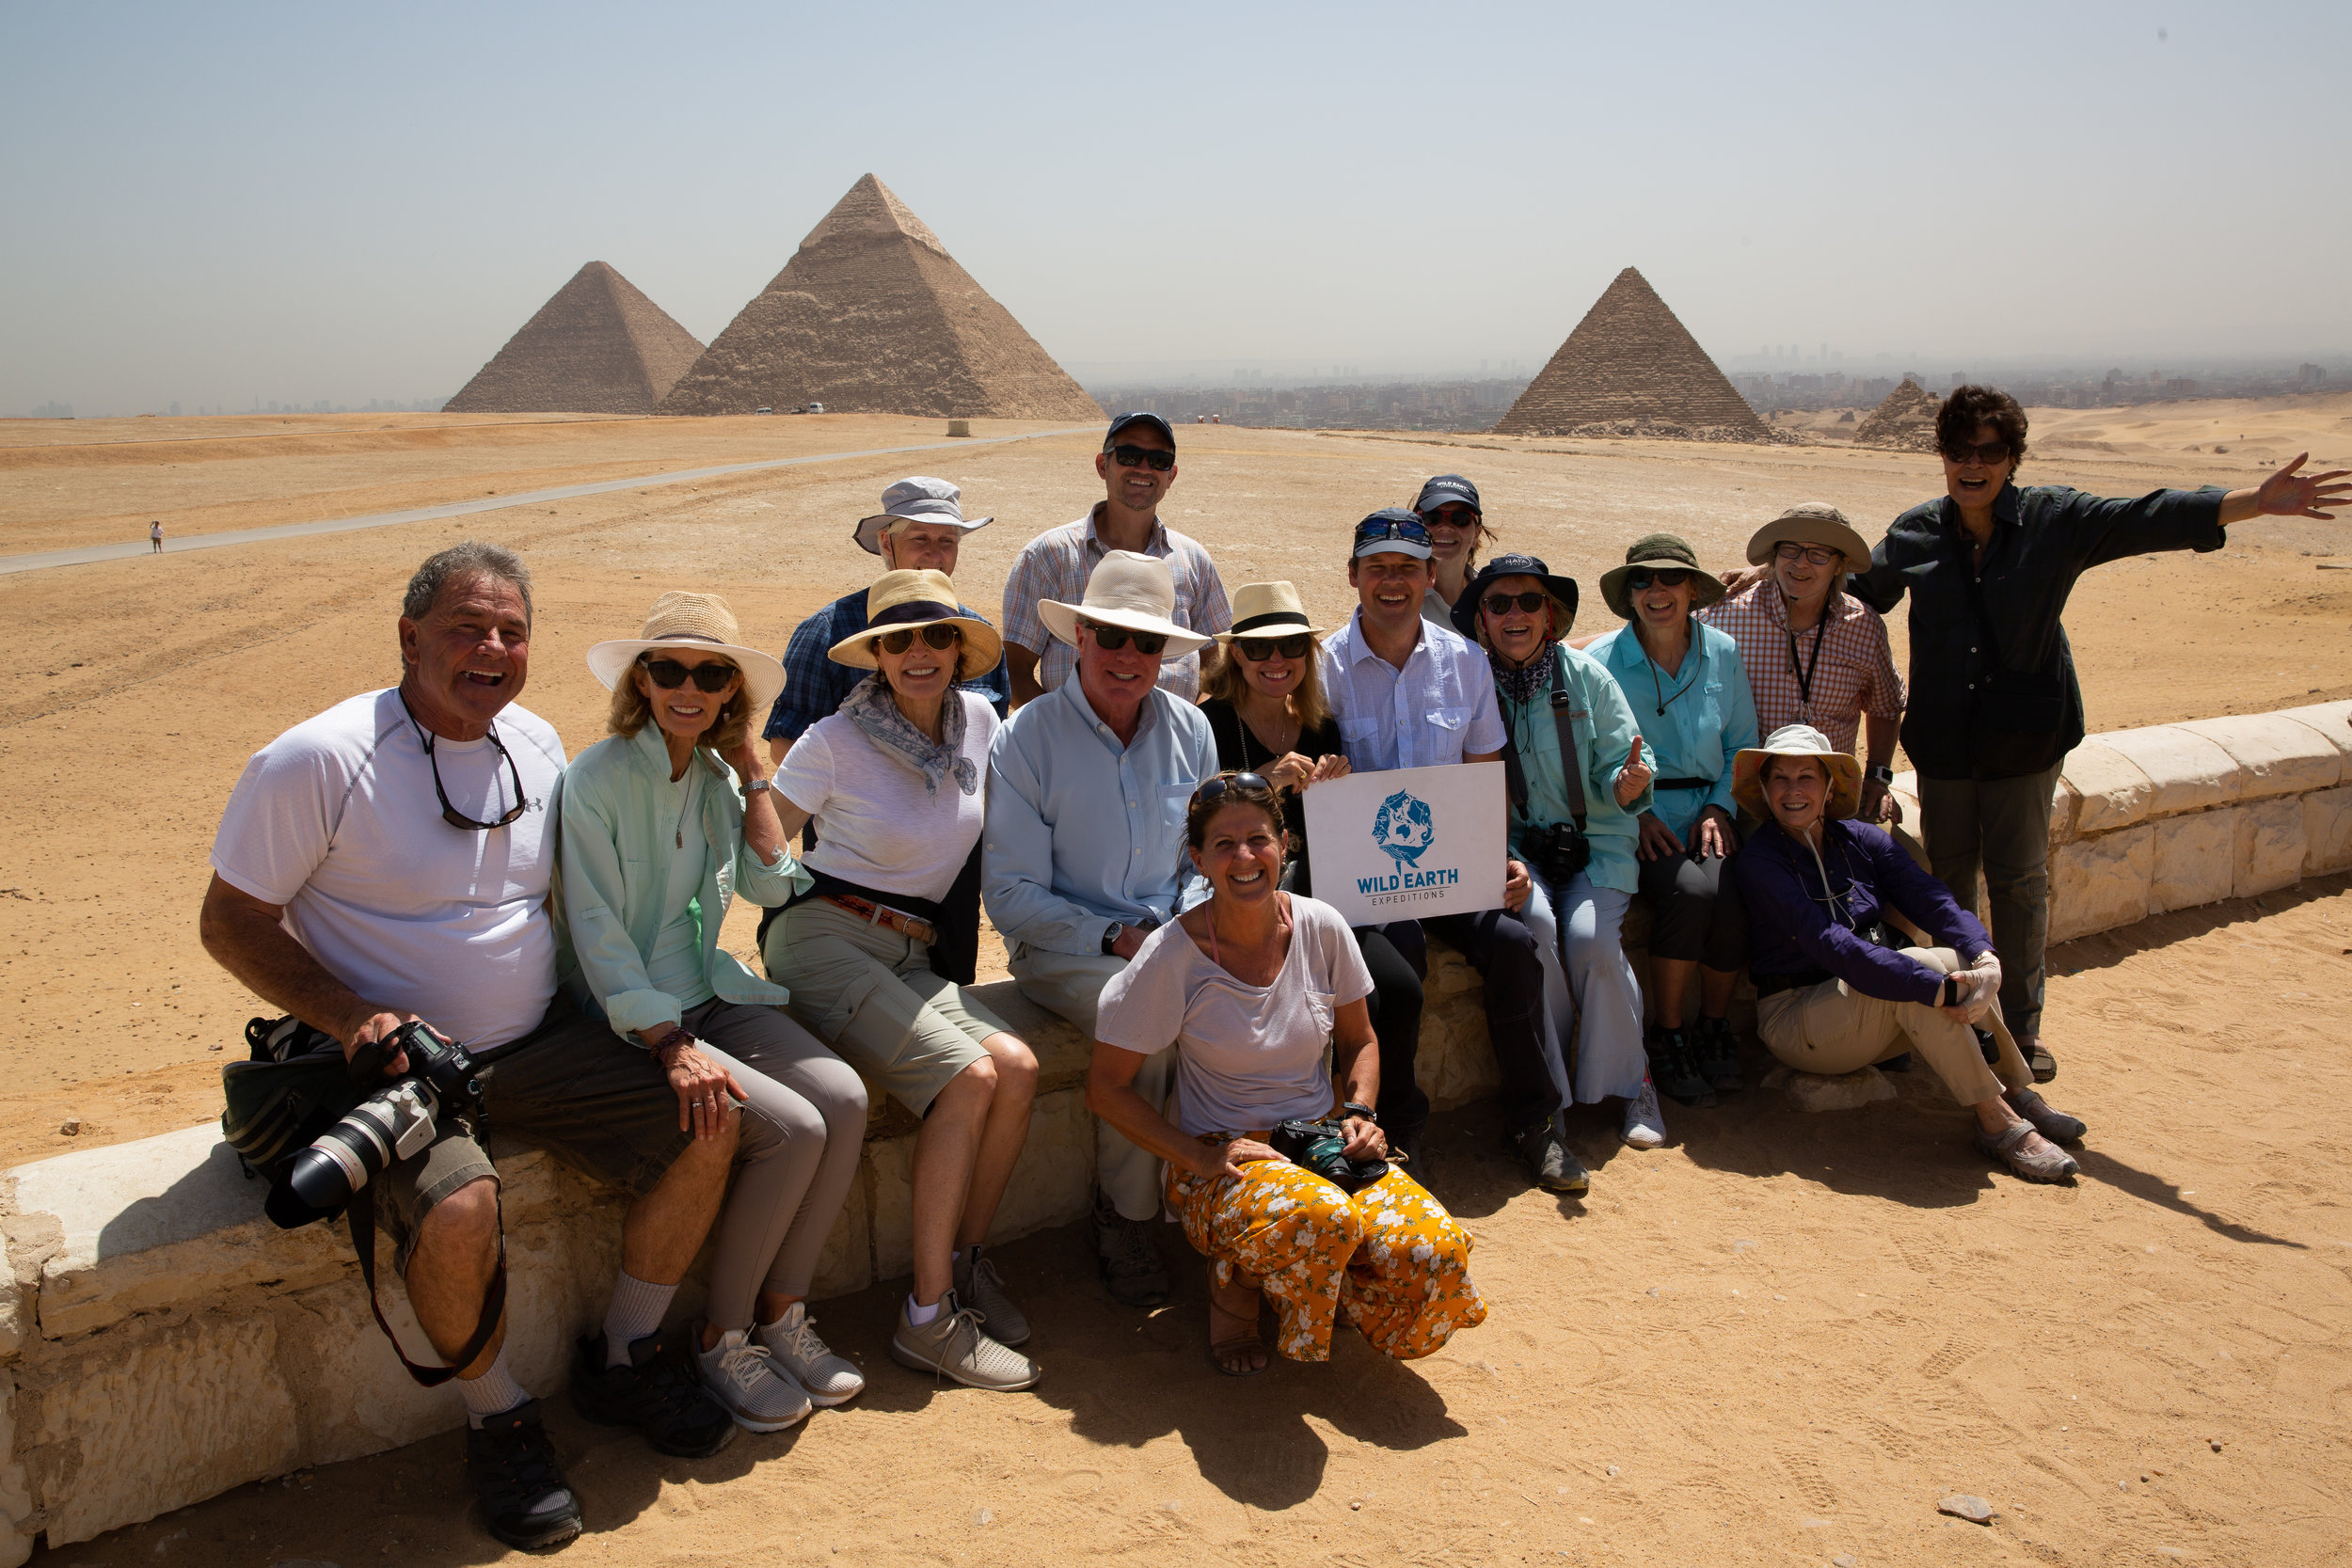 The Great Pyramids, Cairo - Egypt - Wild Earth Expeditions